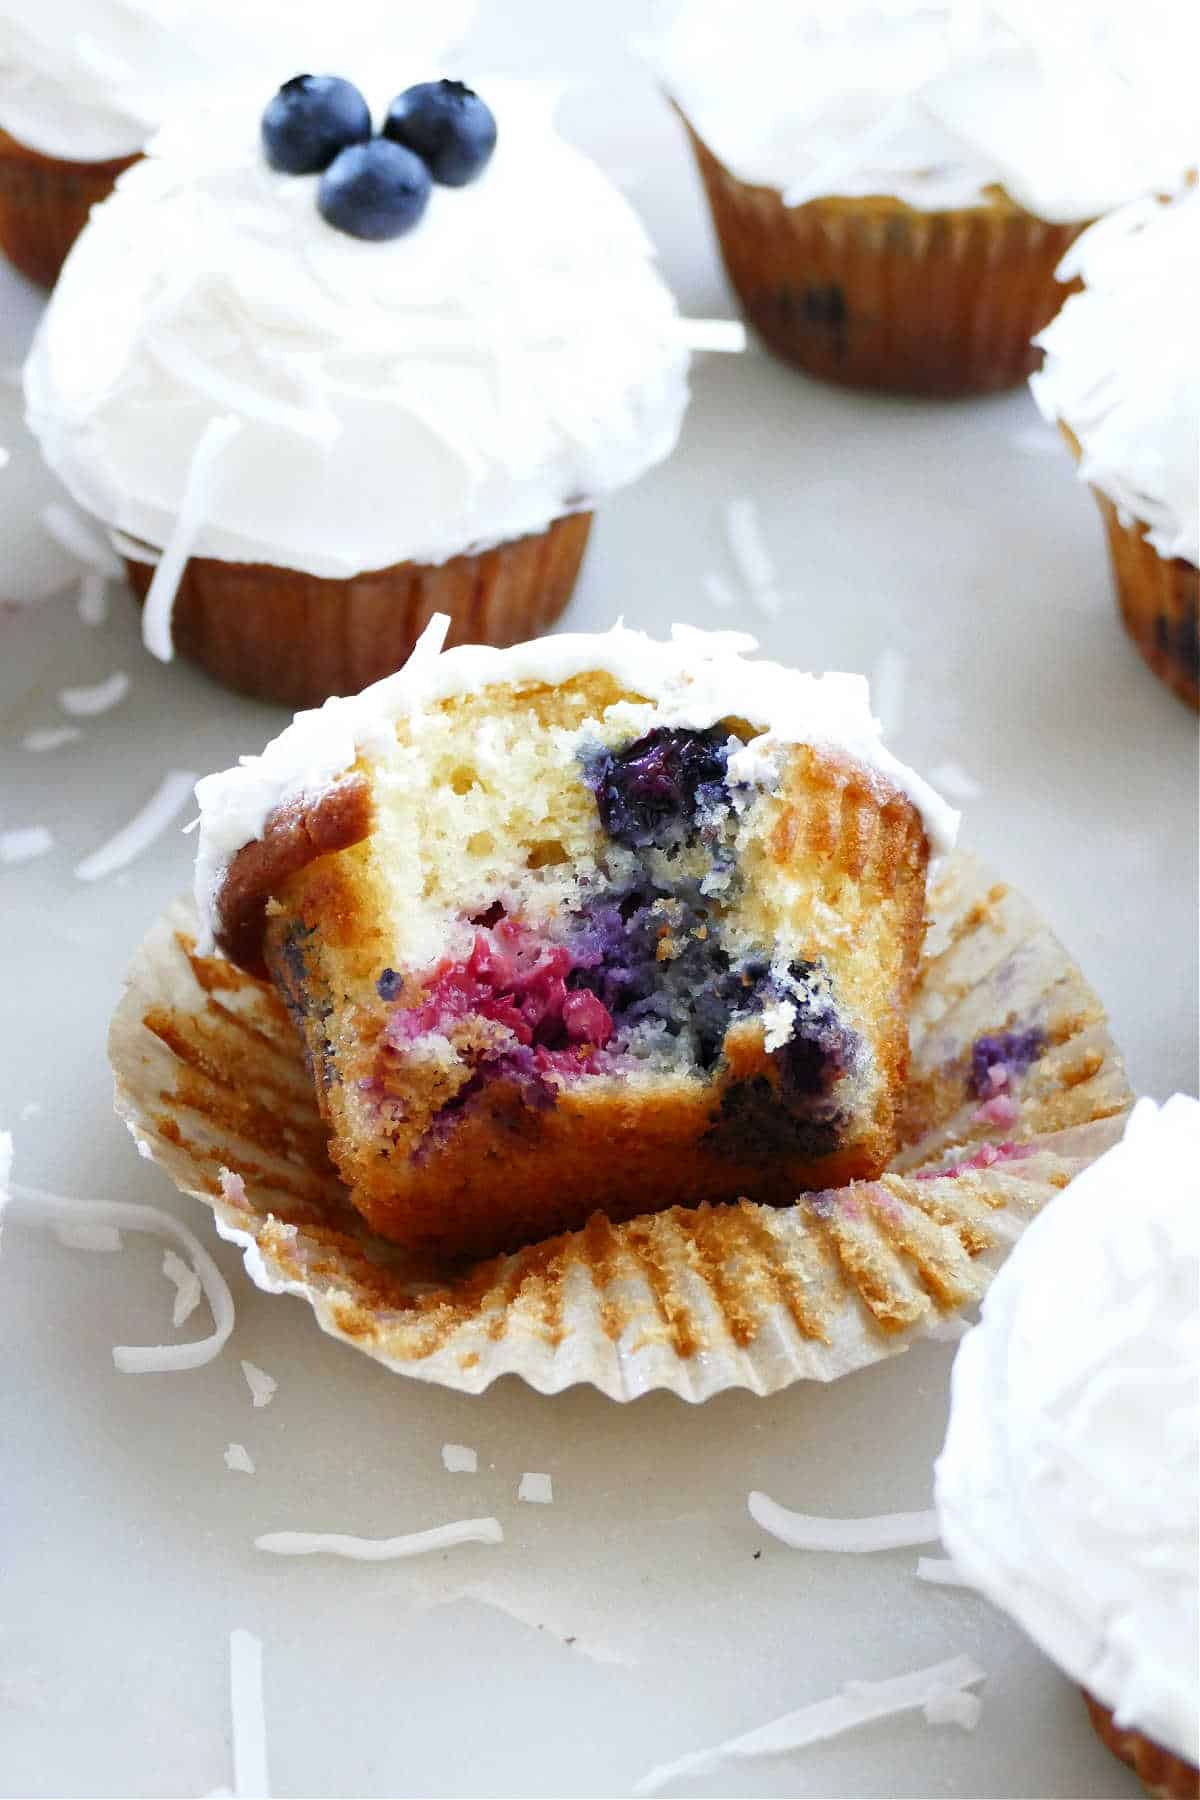 a triple berry cupcake with a bite taken out on a cupcake liner on a counter